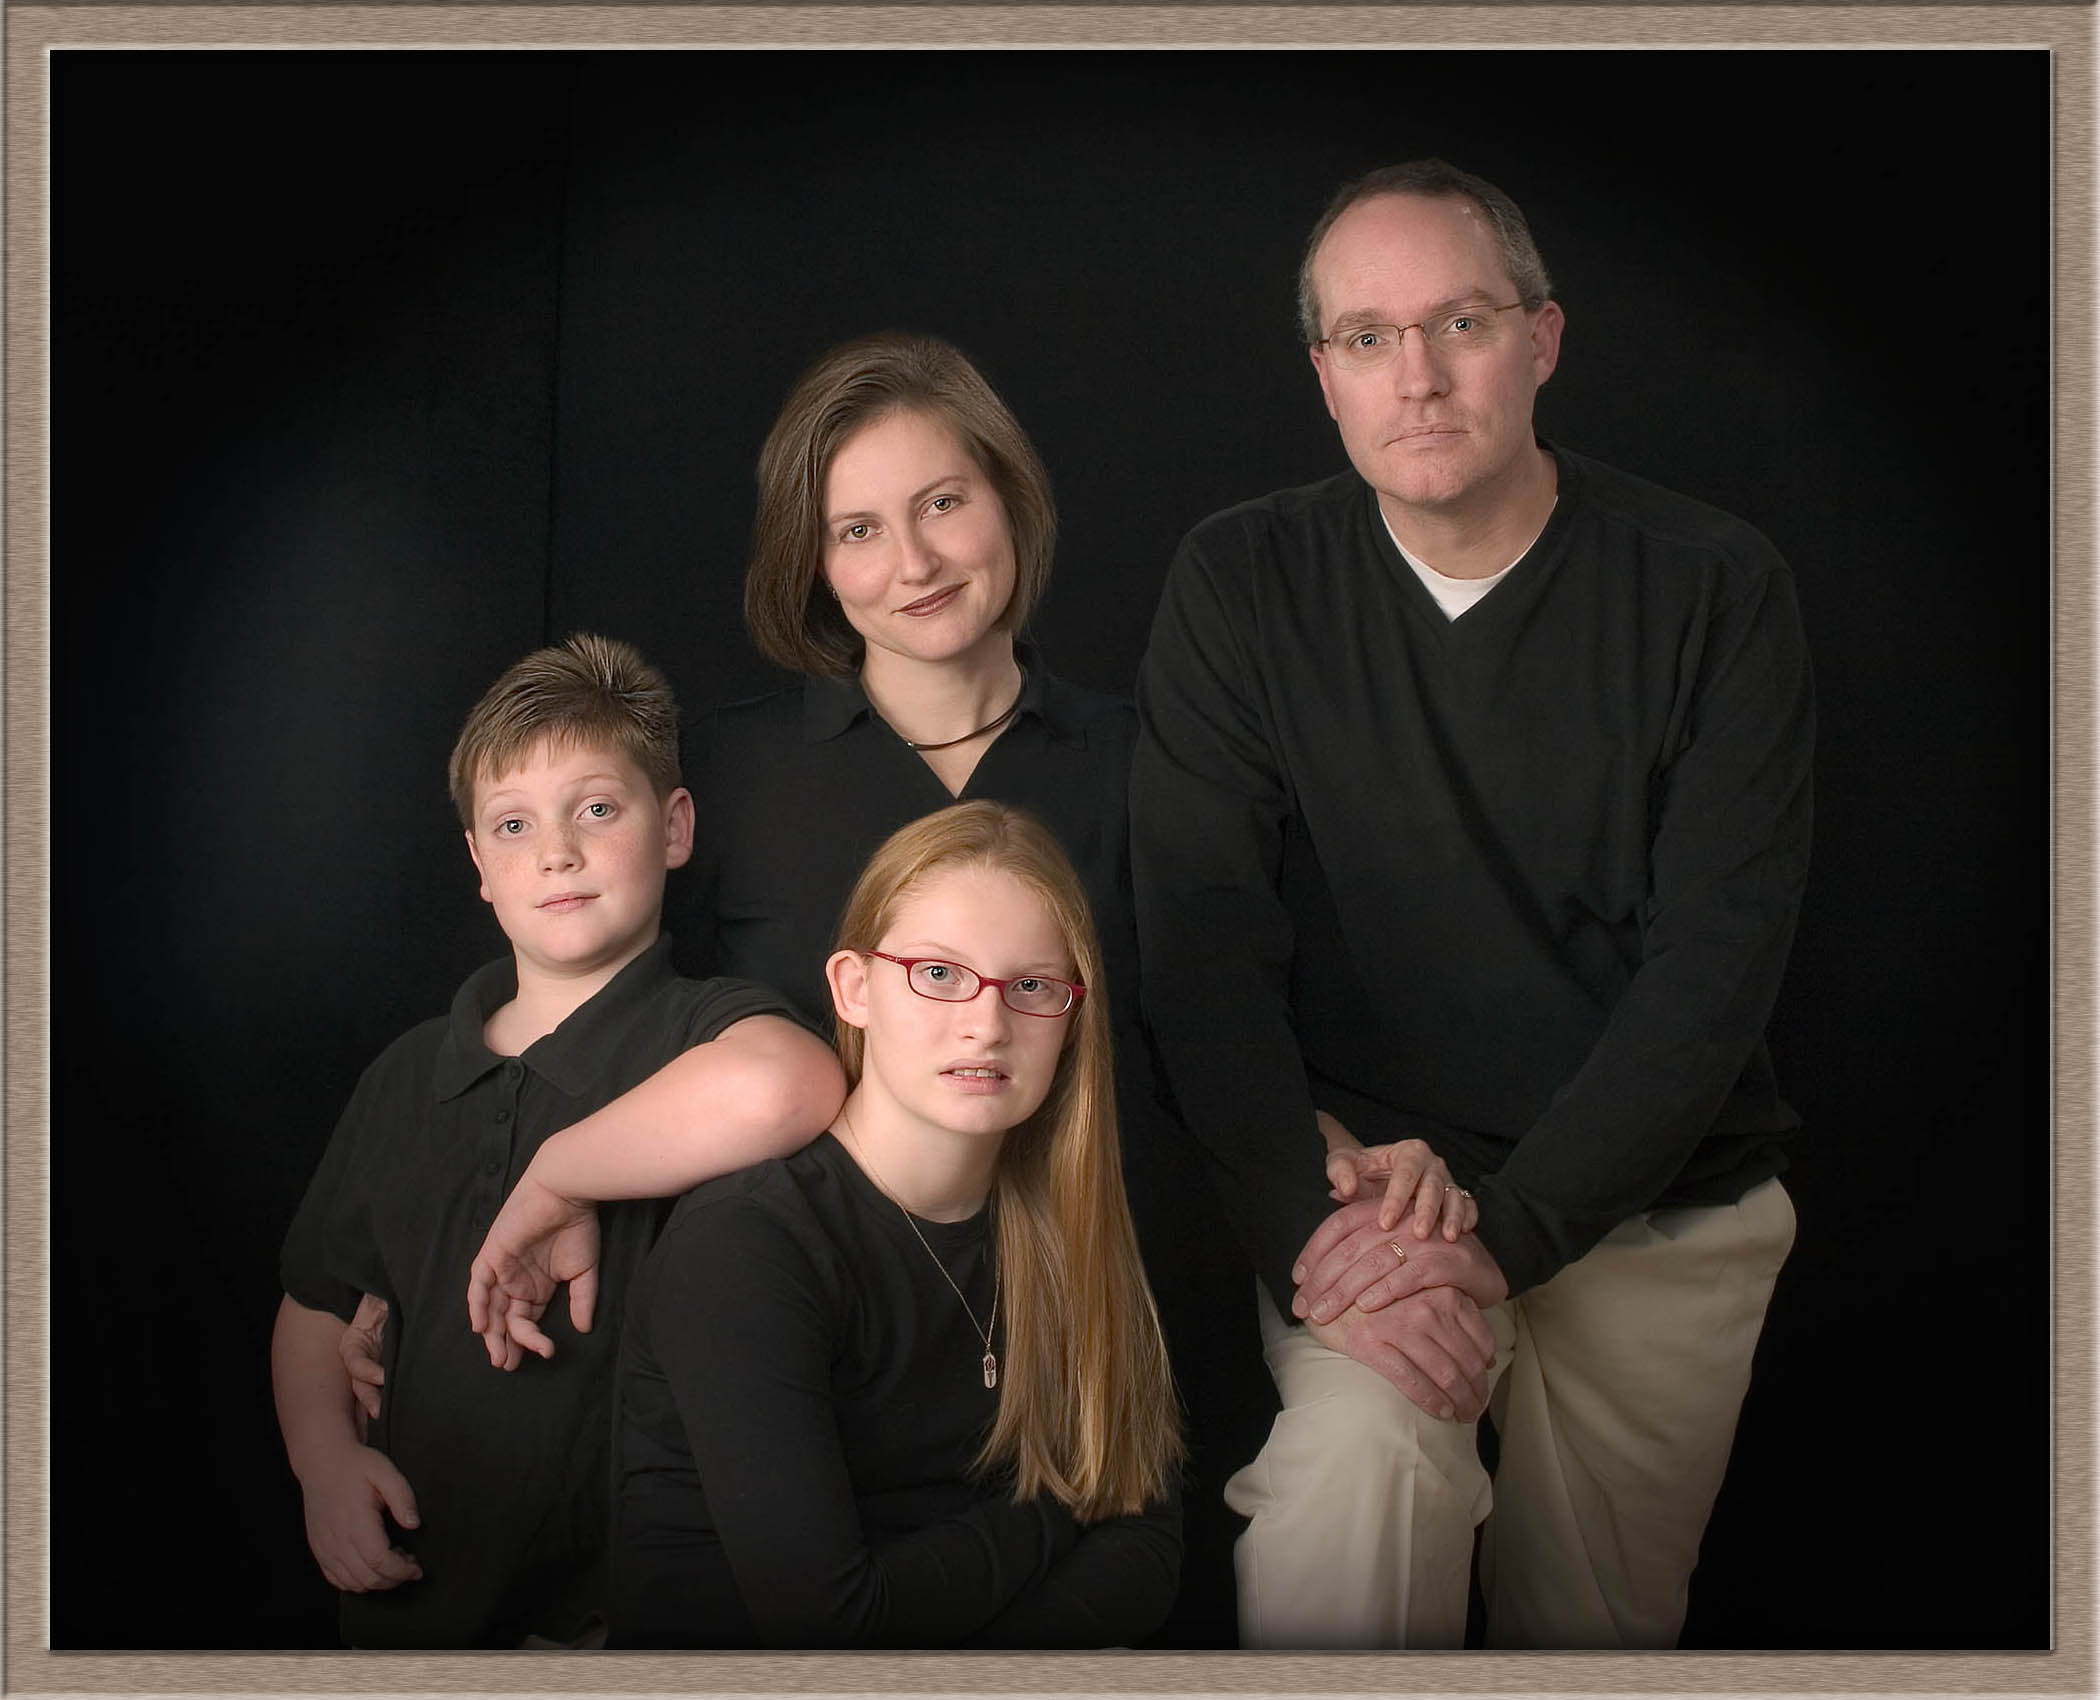 Family portrait photography price list Cached